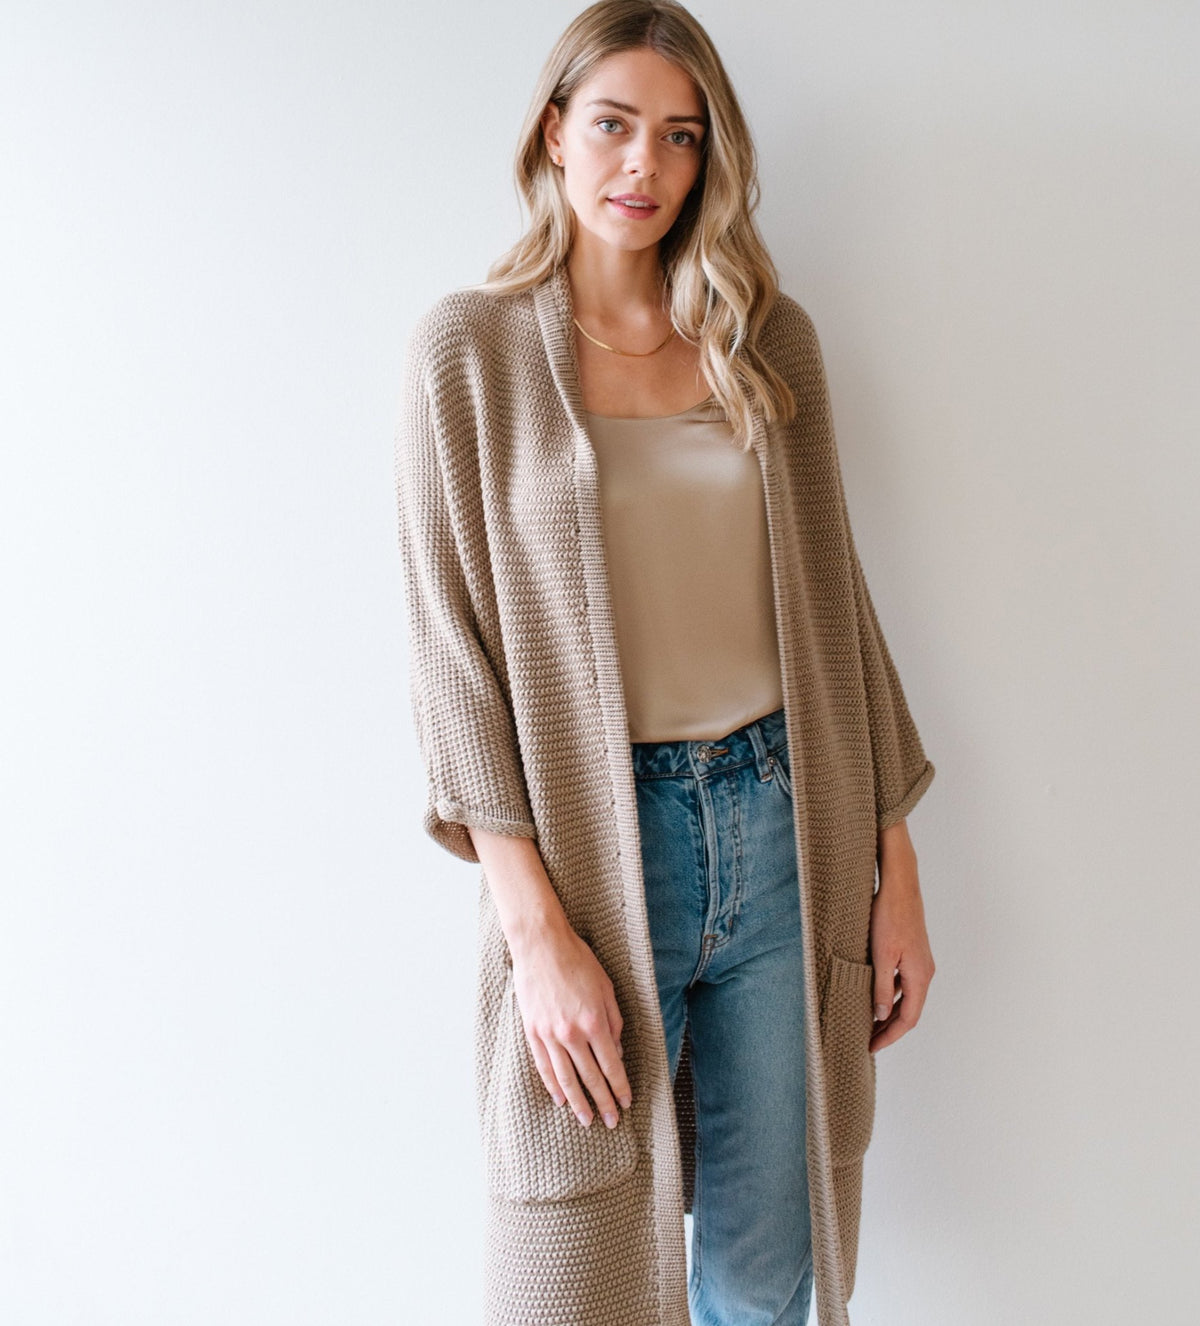 SHOP THE SKINNY x SO PRETTY - SO PRETTY CARA COTTER